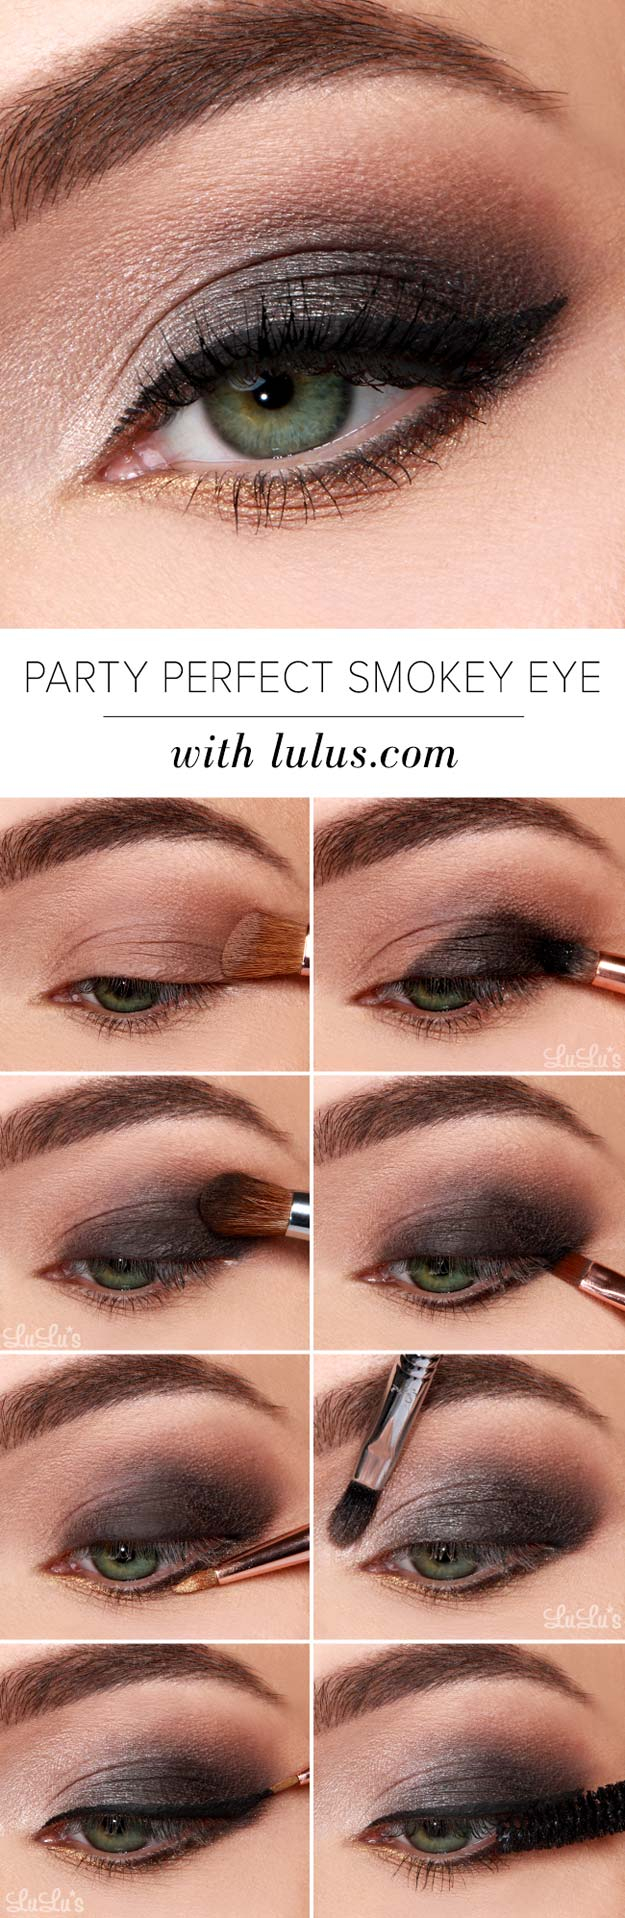 Eye Makeup Evening Smokey Eye Makeup Tutorial How To Do A Smokey Eye Makeup Tbg